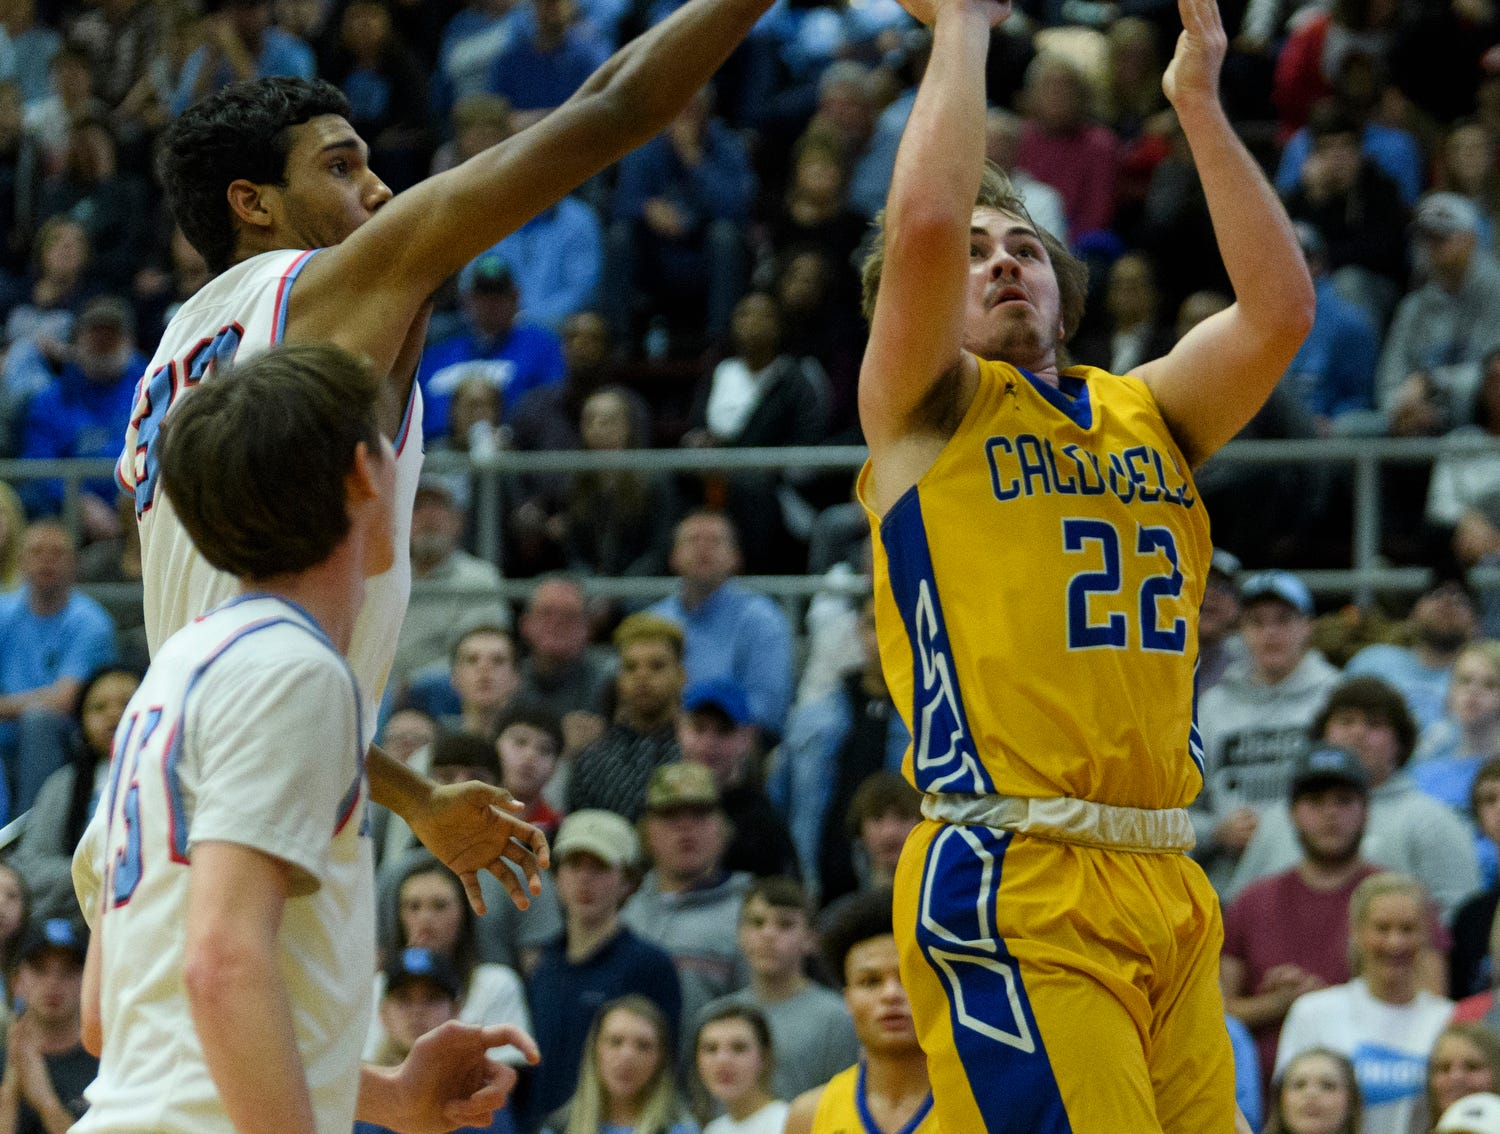 Caldwell County's Cayden Fraliex (22) goes for the net during the Boys Second Region tournament against the Union County Braves at Madisonville-North Hopkins High School in Madisonville, Ky., Monday, Feb. 25, 2019. The Tigers defeated the Braves 67-64 to advance to Friday's second region semifinal against University Heights Academy.